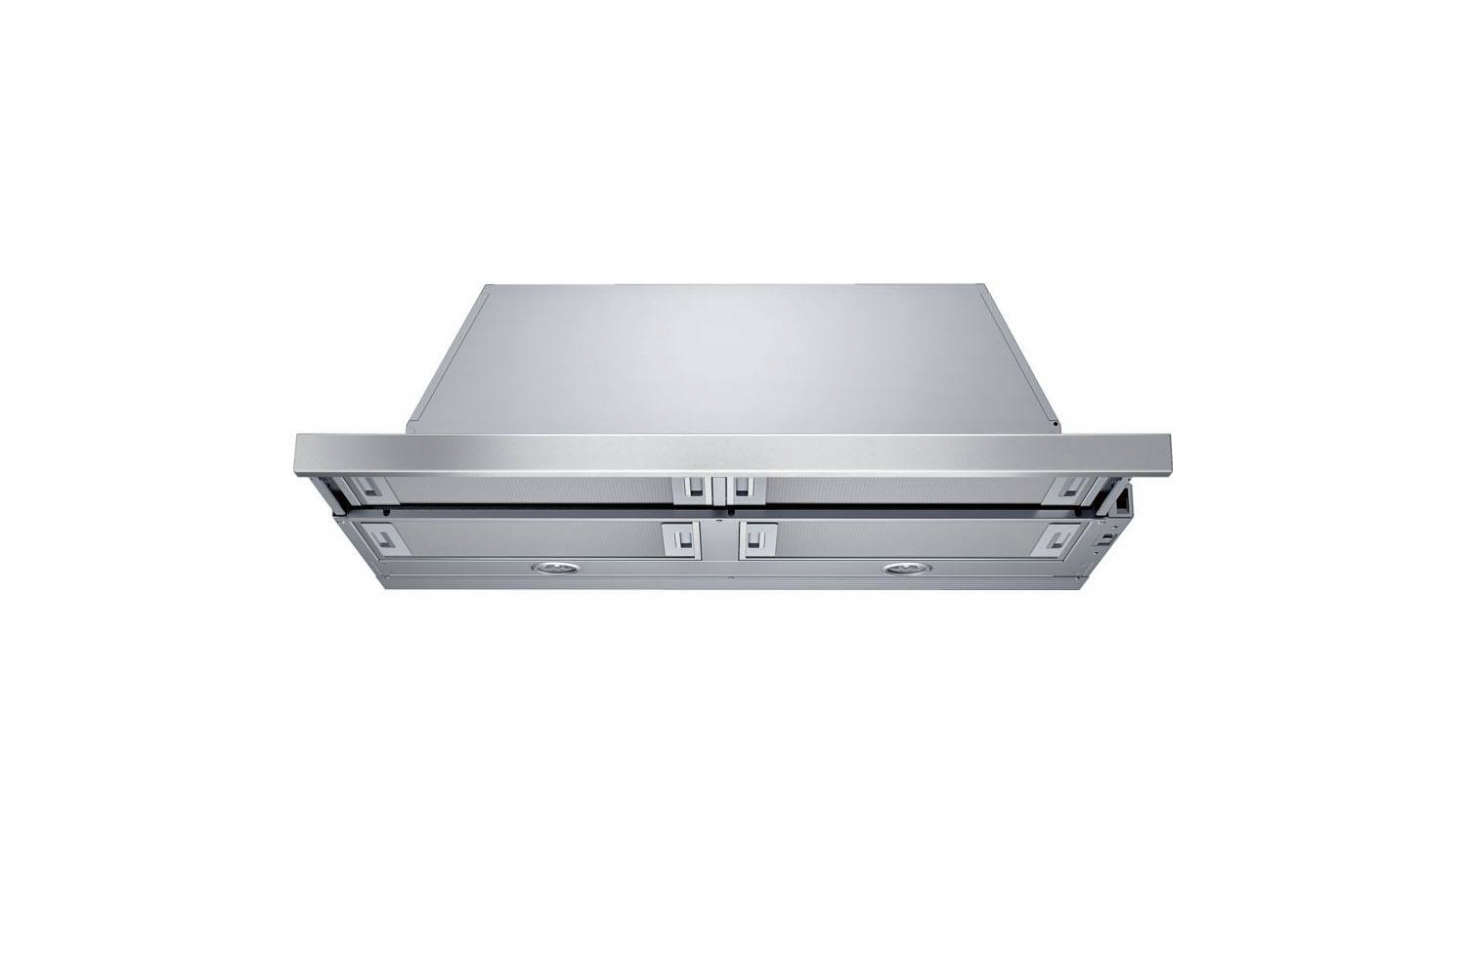 The Bosch 500 Series 36-Inch Slide-Out Range Hood is $7 at Amazon. It slides in flush with the cabinets when not in use and the front is stainless steel—and also panel-ready.